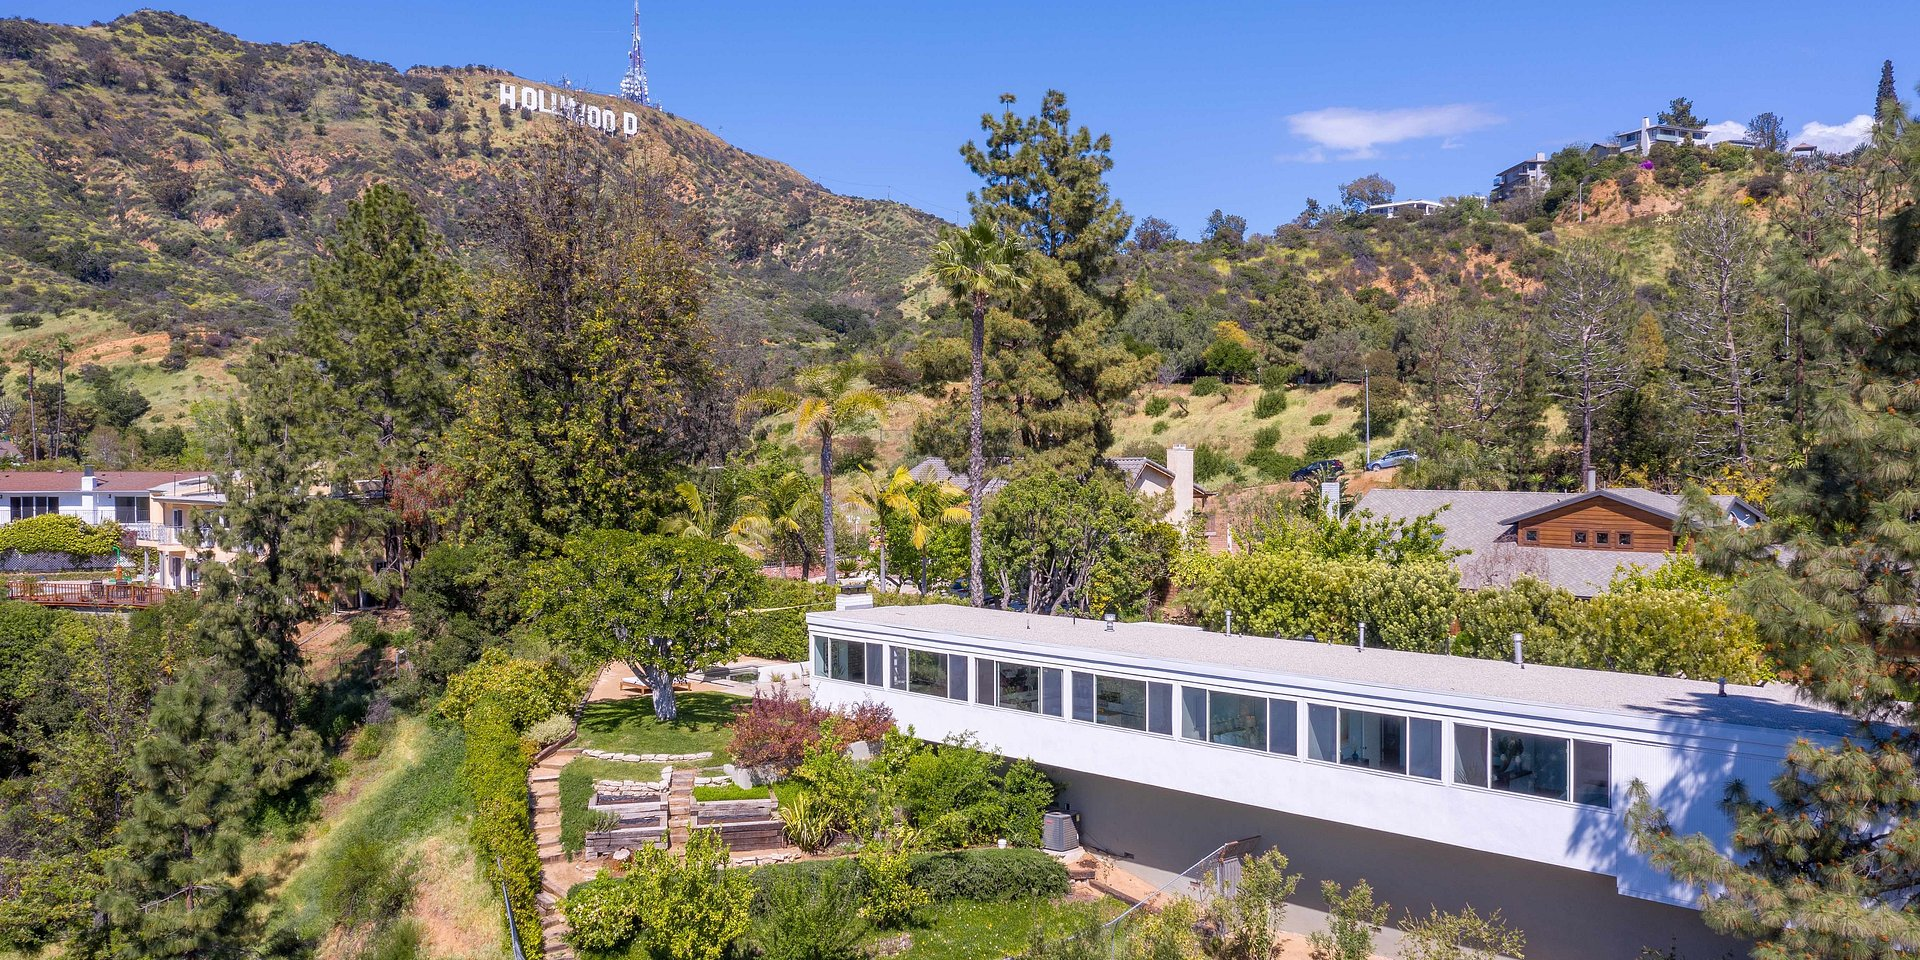 Coldwell Banker Residential Brokerage Lists Hollywood Hills Property for $1.798 Million